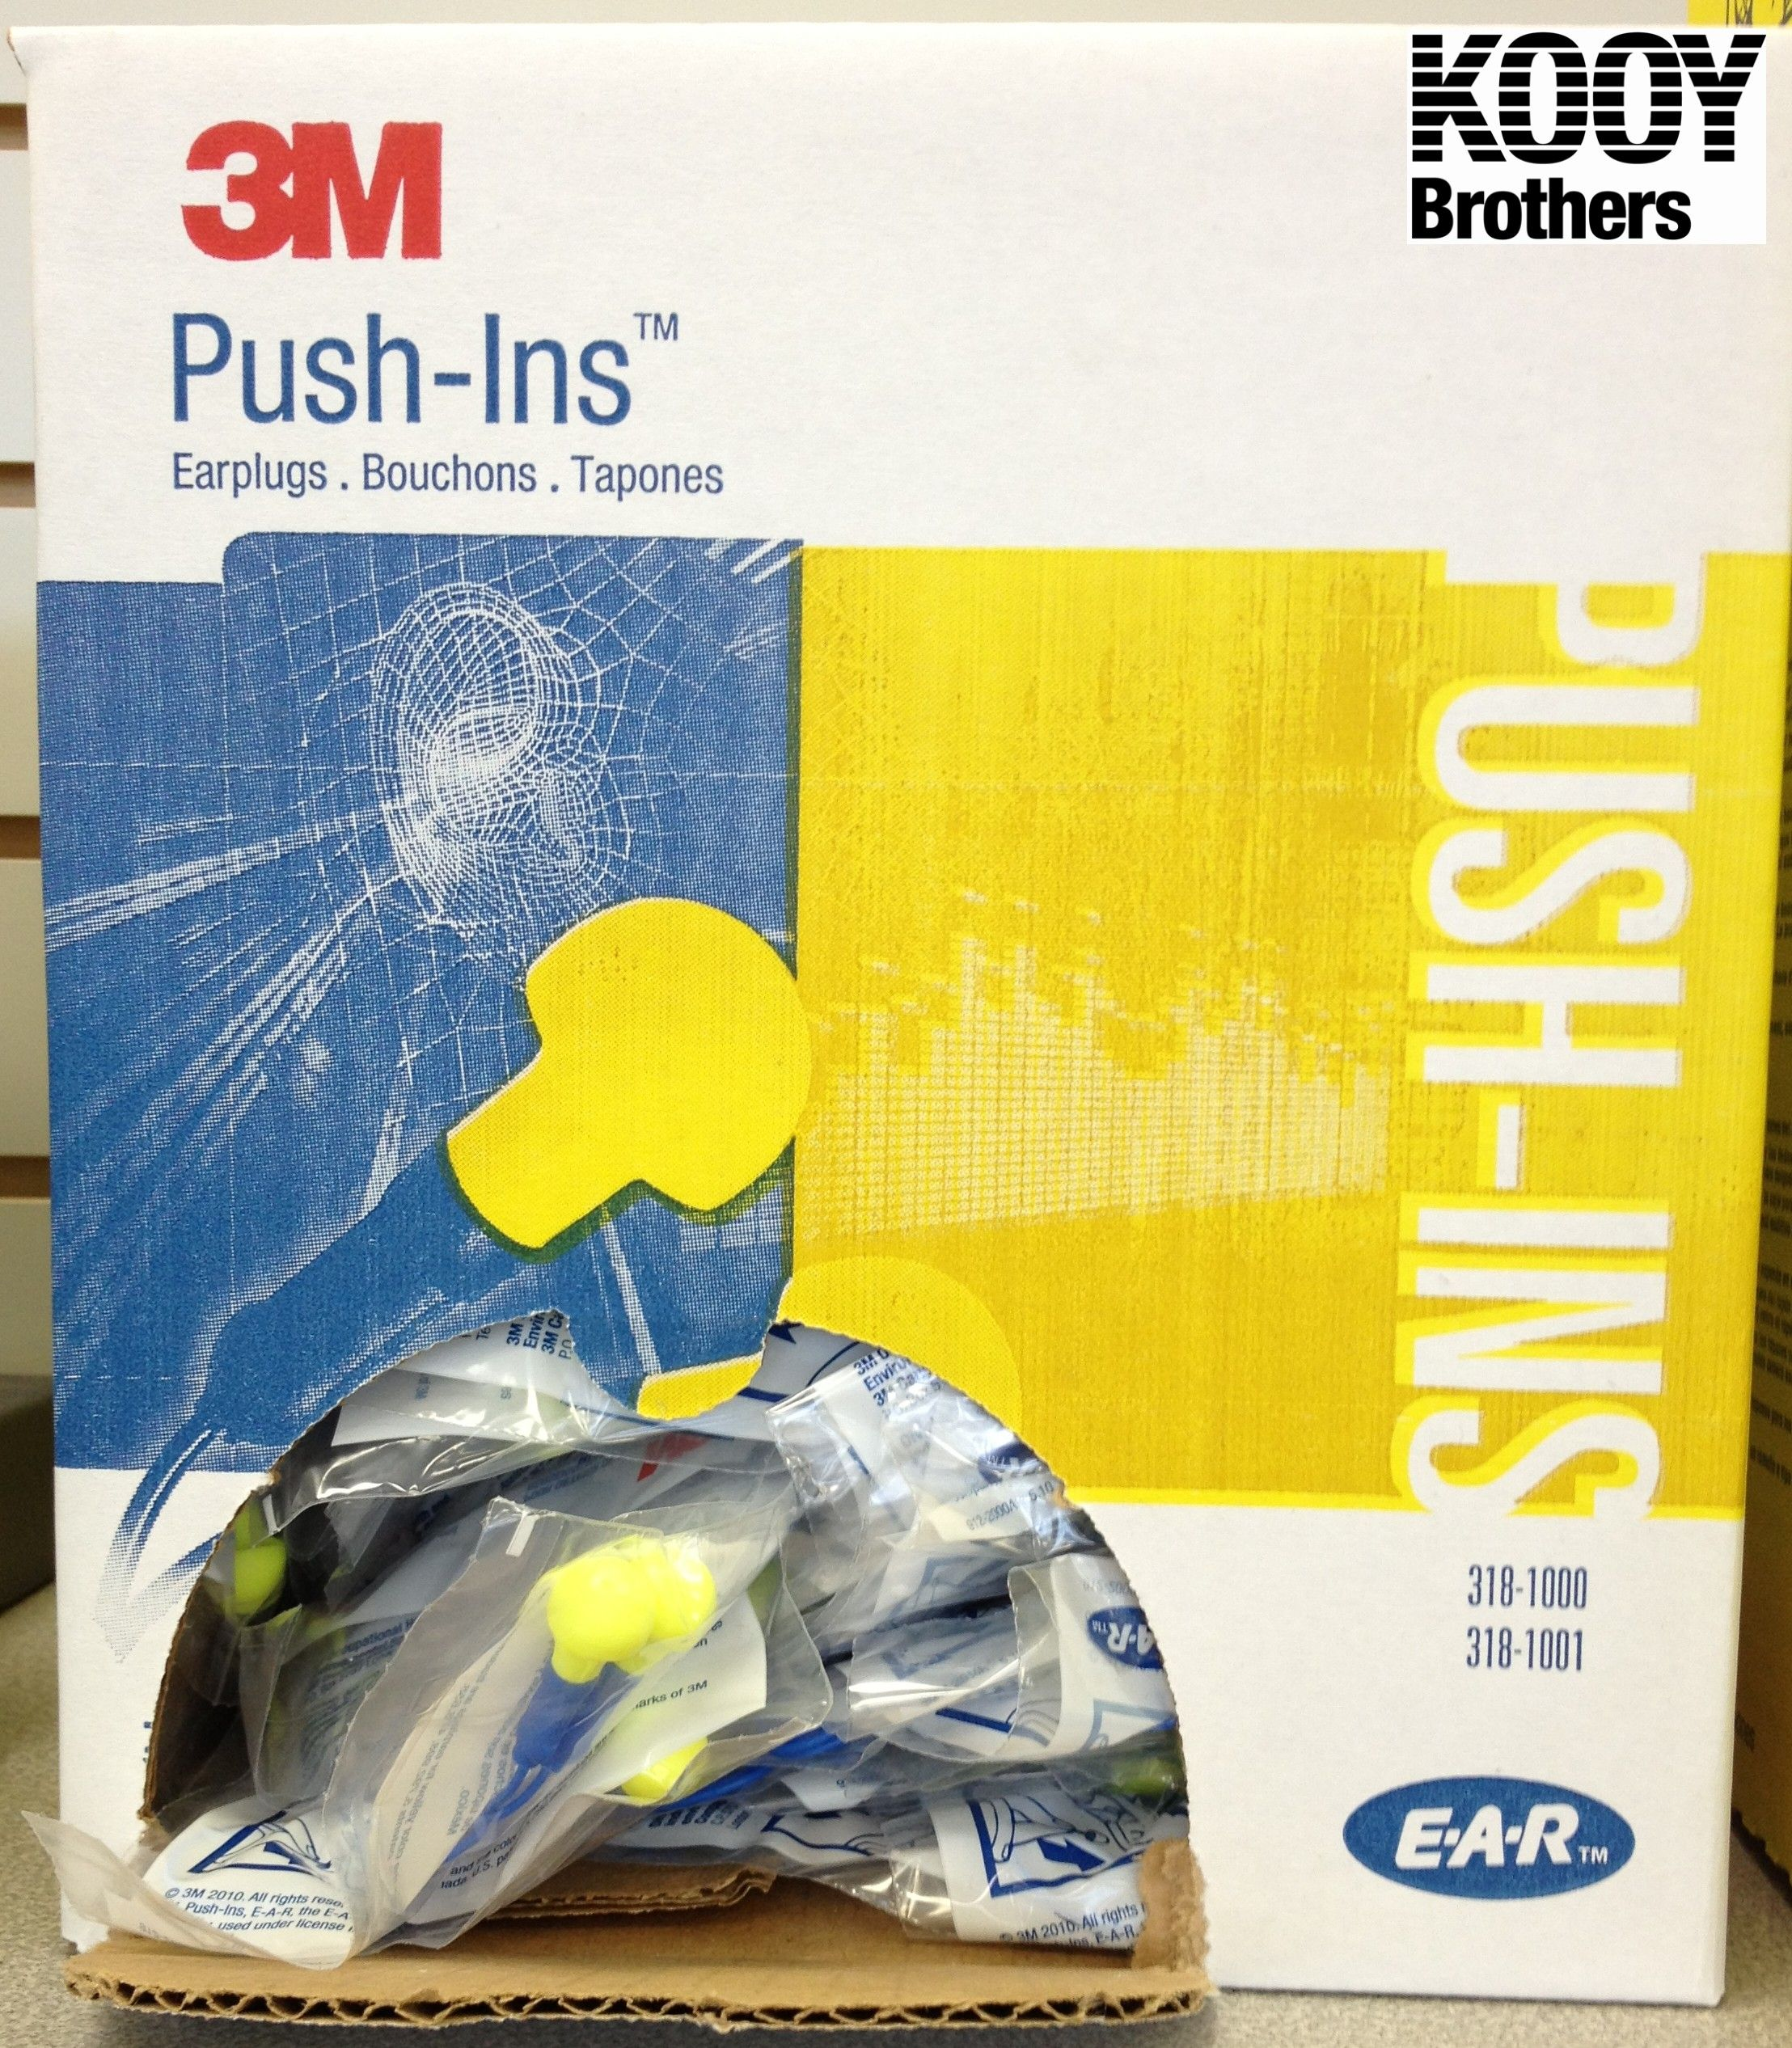 Push-in Ear Plugs by 3M - purchase single or case